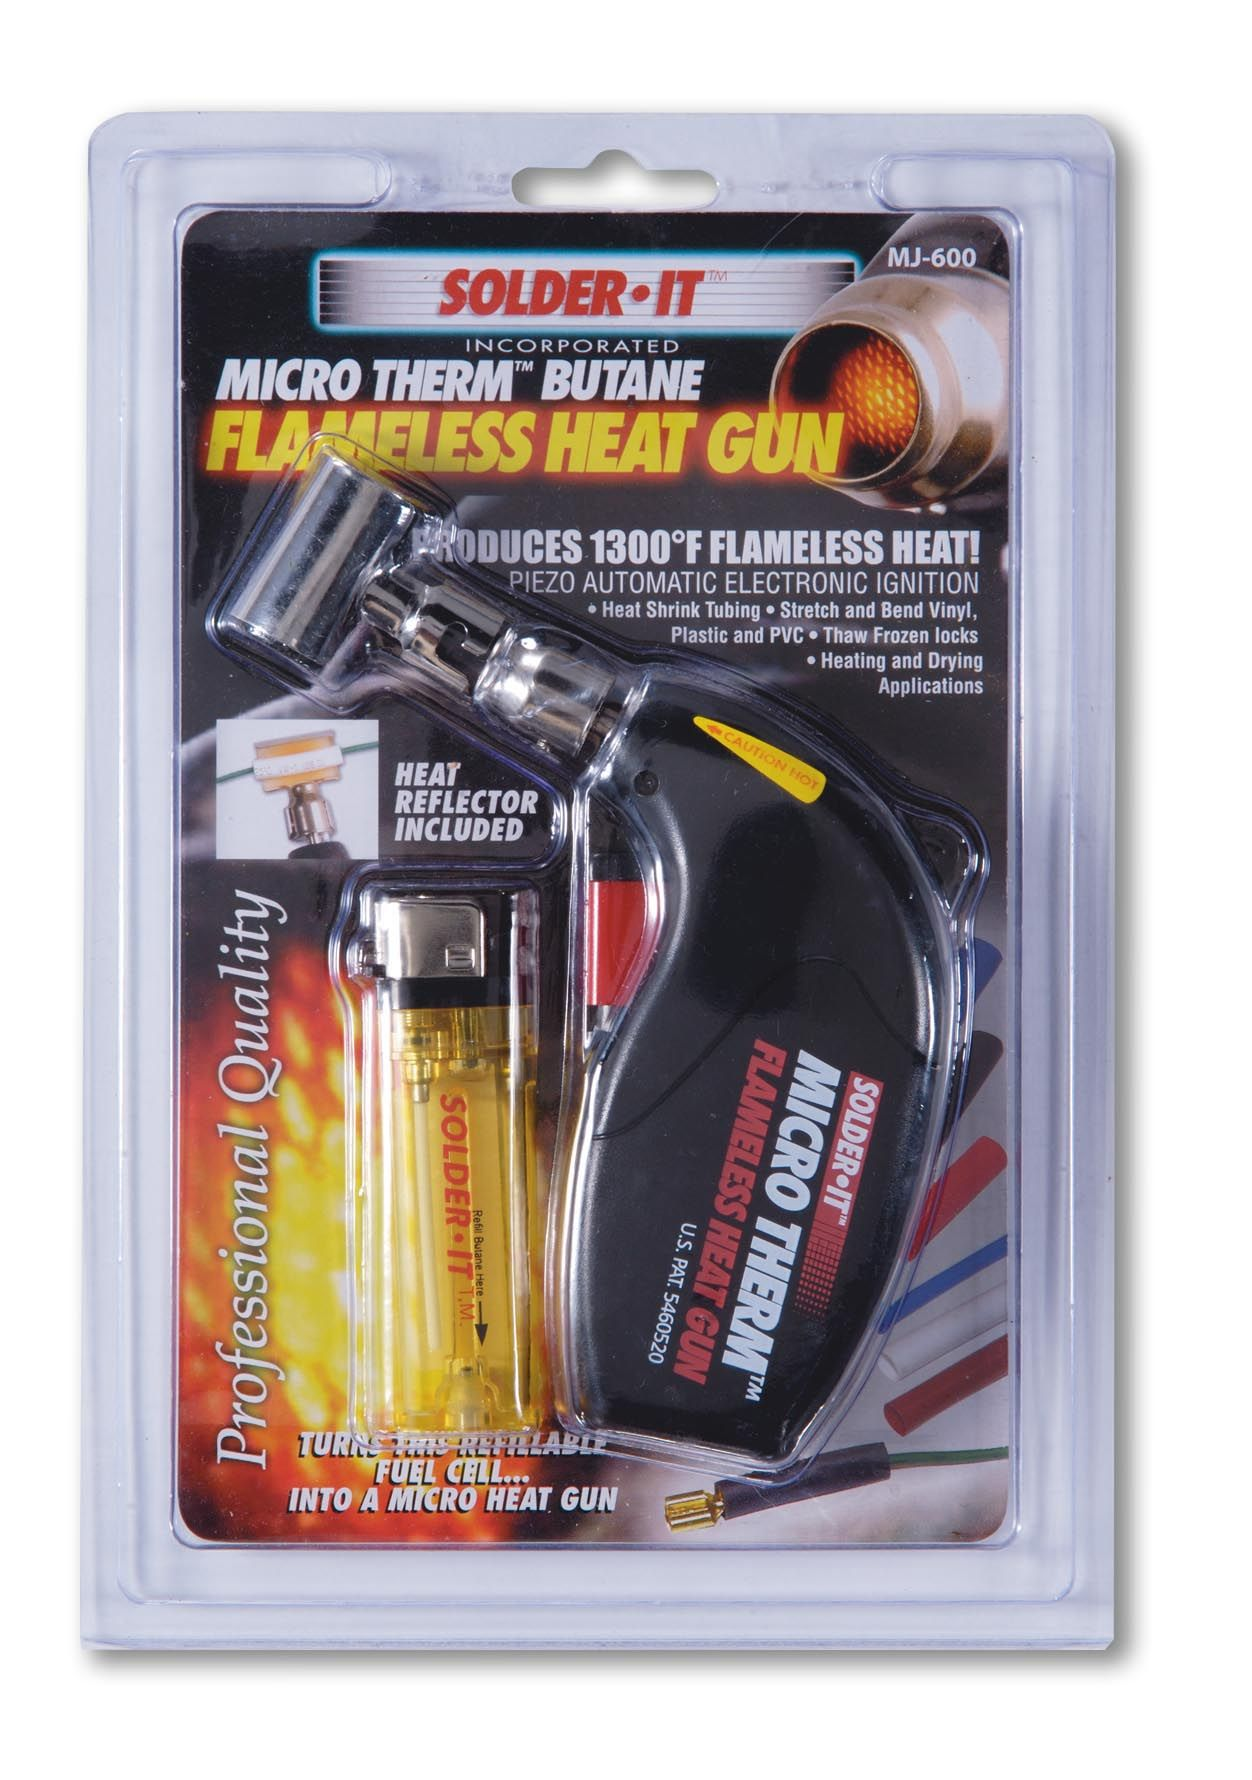 Kays Fasteners Pro Iroda Rc-30 Refillable Fuel Cell for Microjet /& MicroTherm Torches Pack of 2